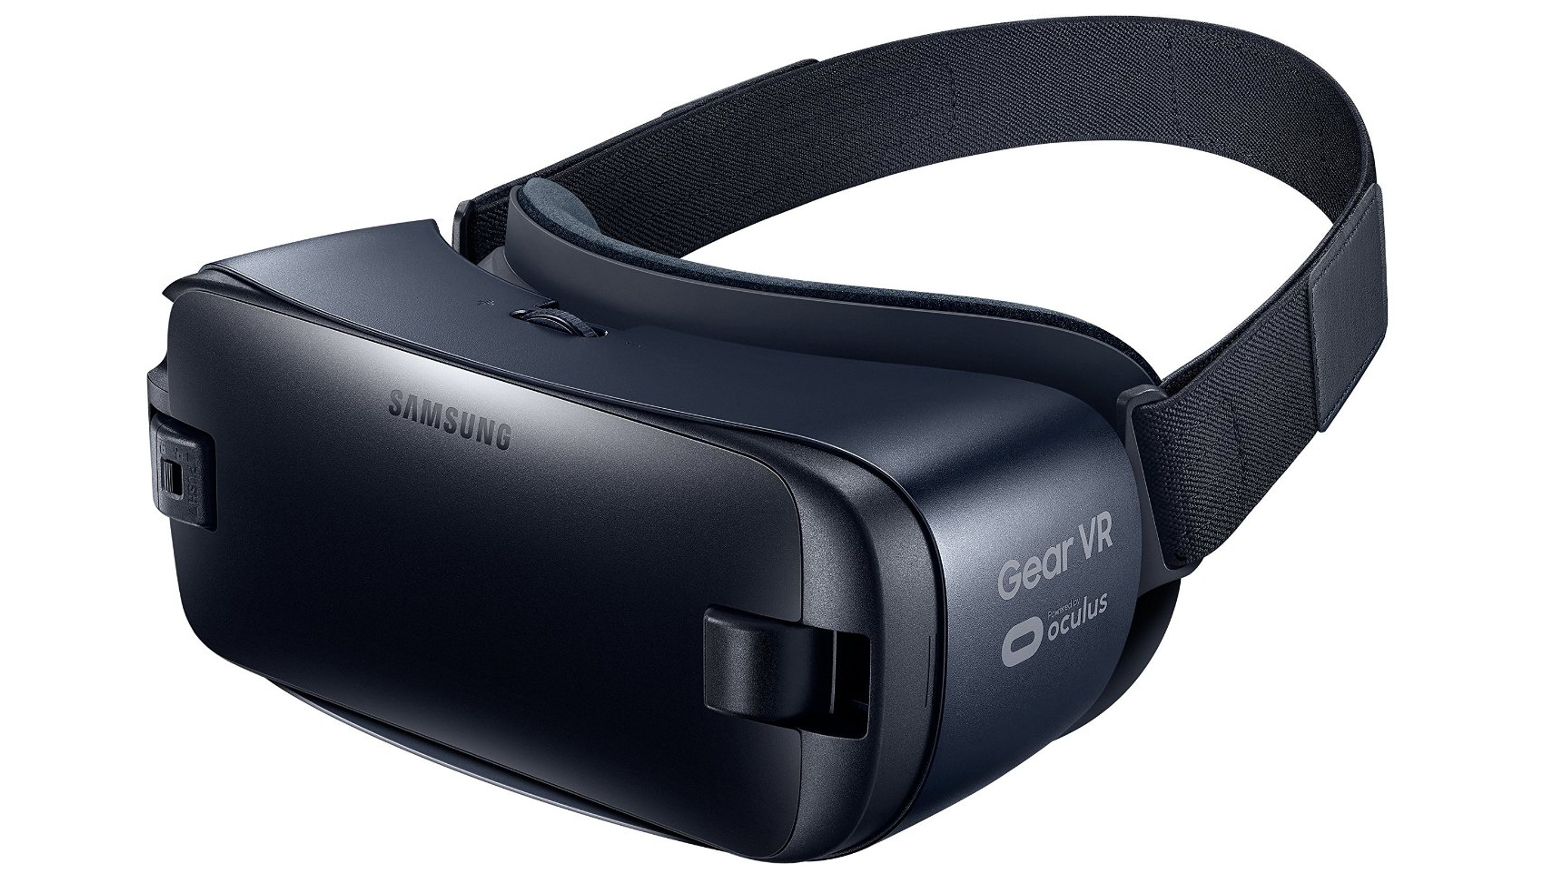 VR, virtual reality, vr headset, virtual reality headset, gear vr, vr gear, gear vr review, gear vr s7